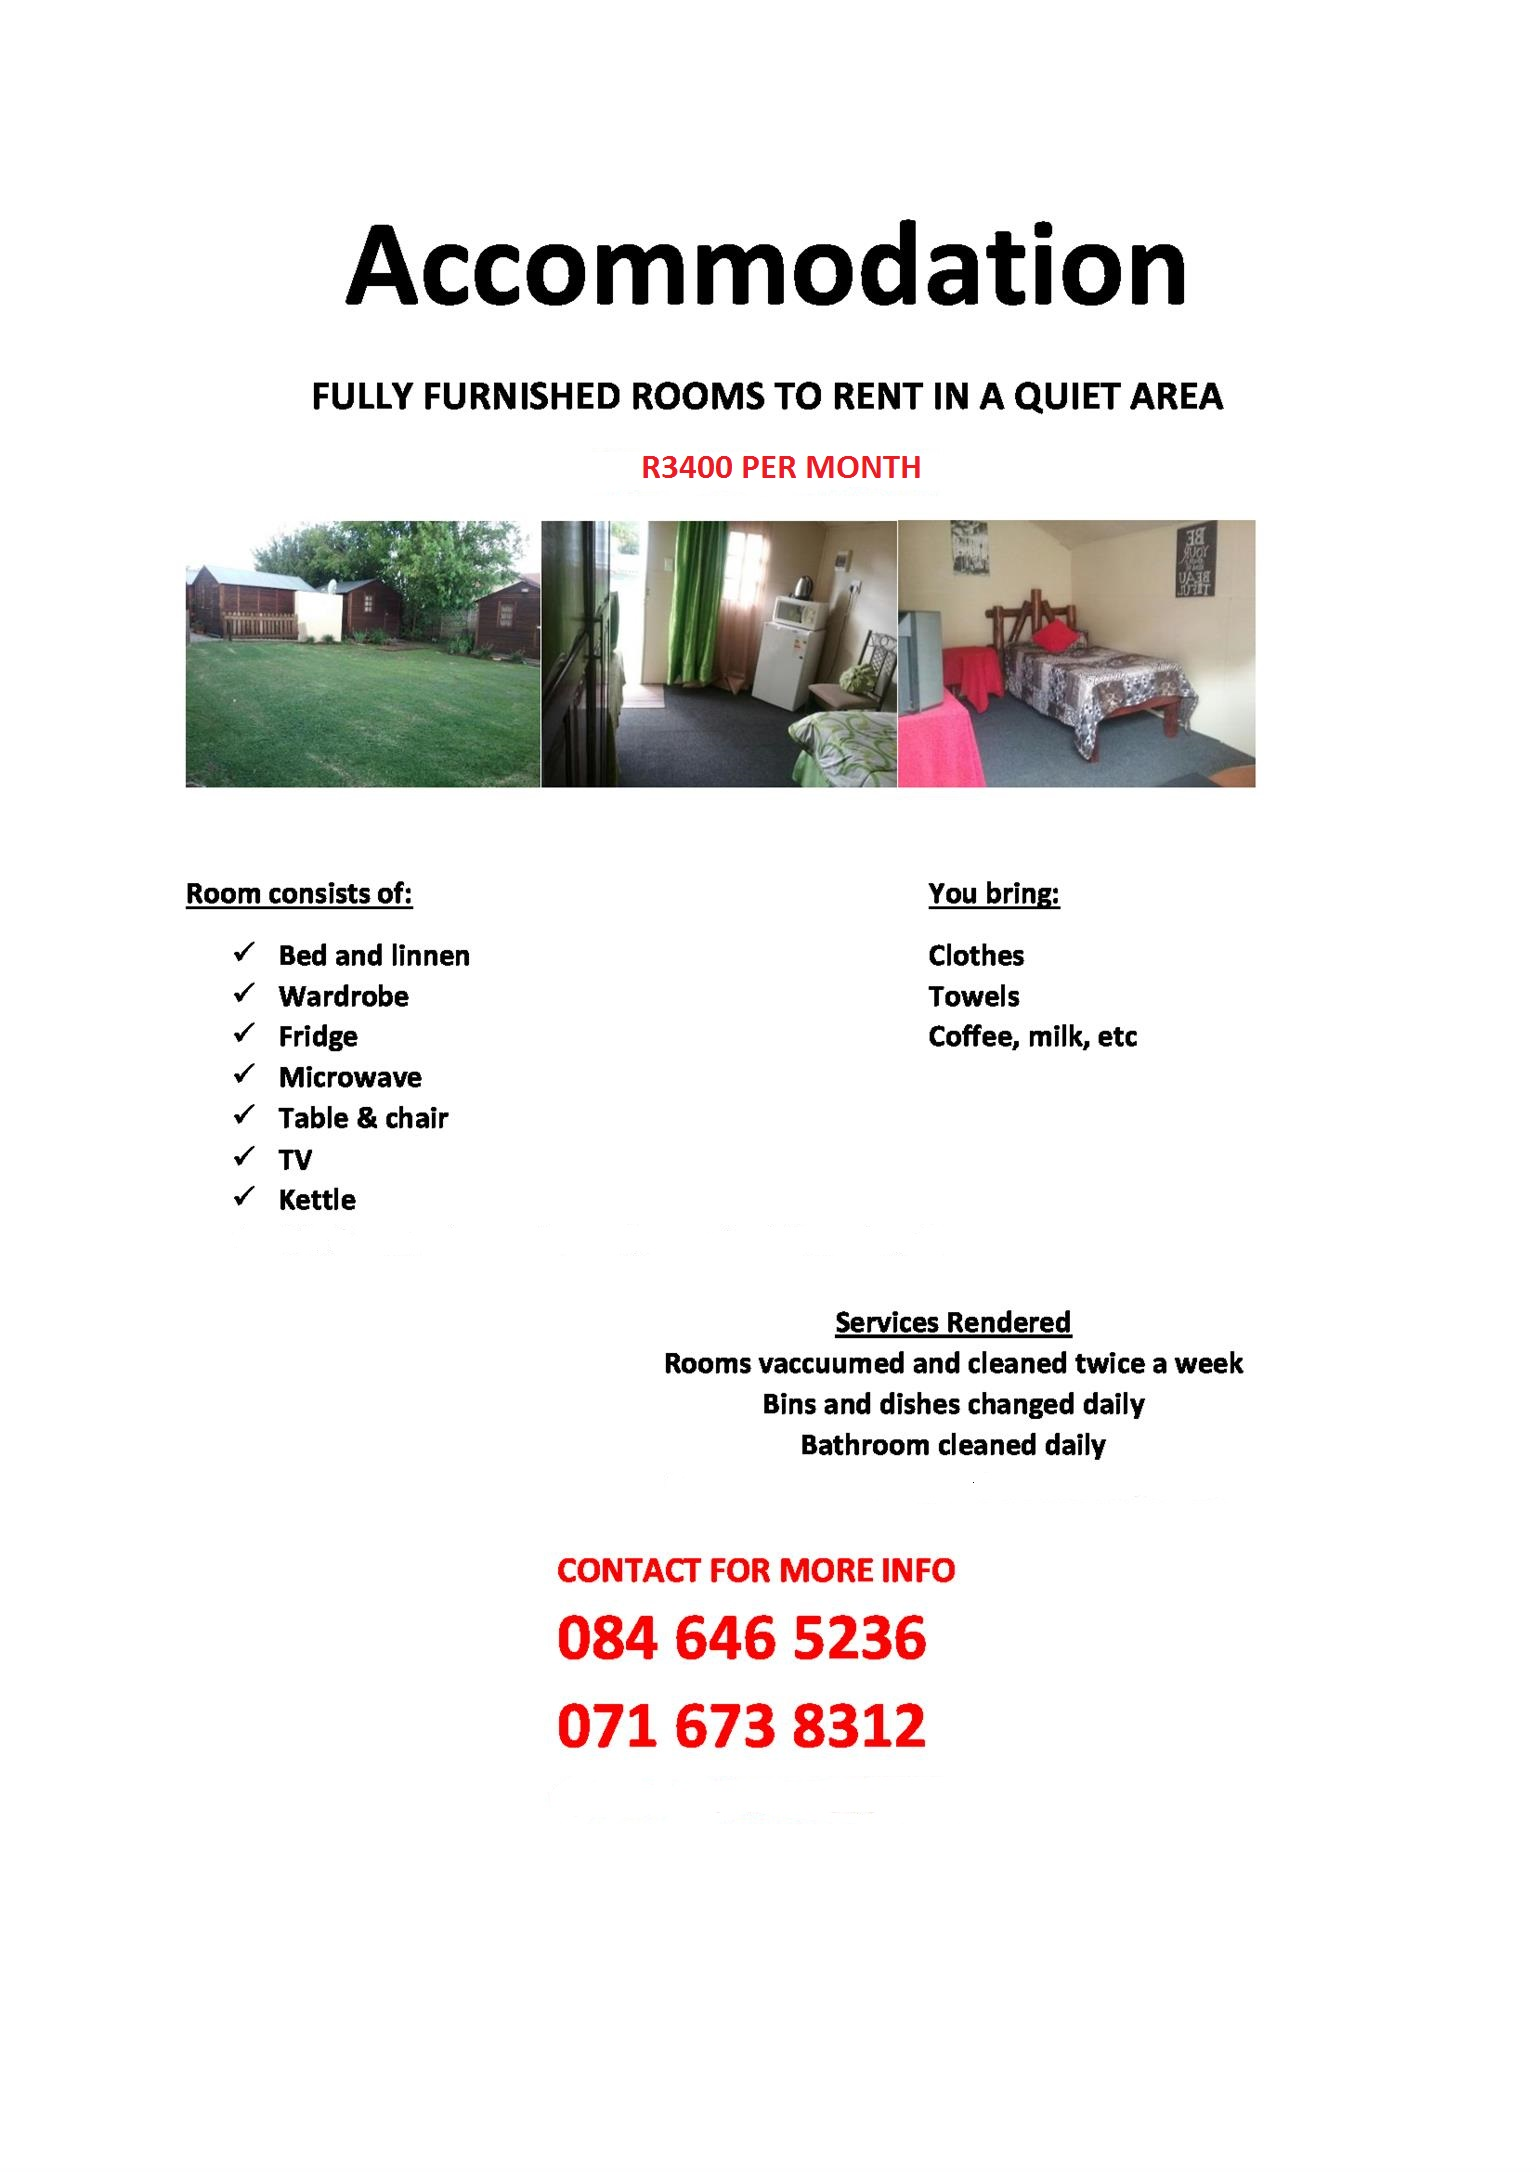 Rooms to rent in quiet area